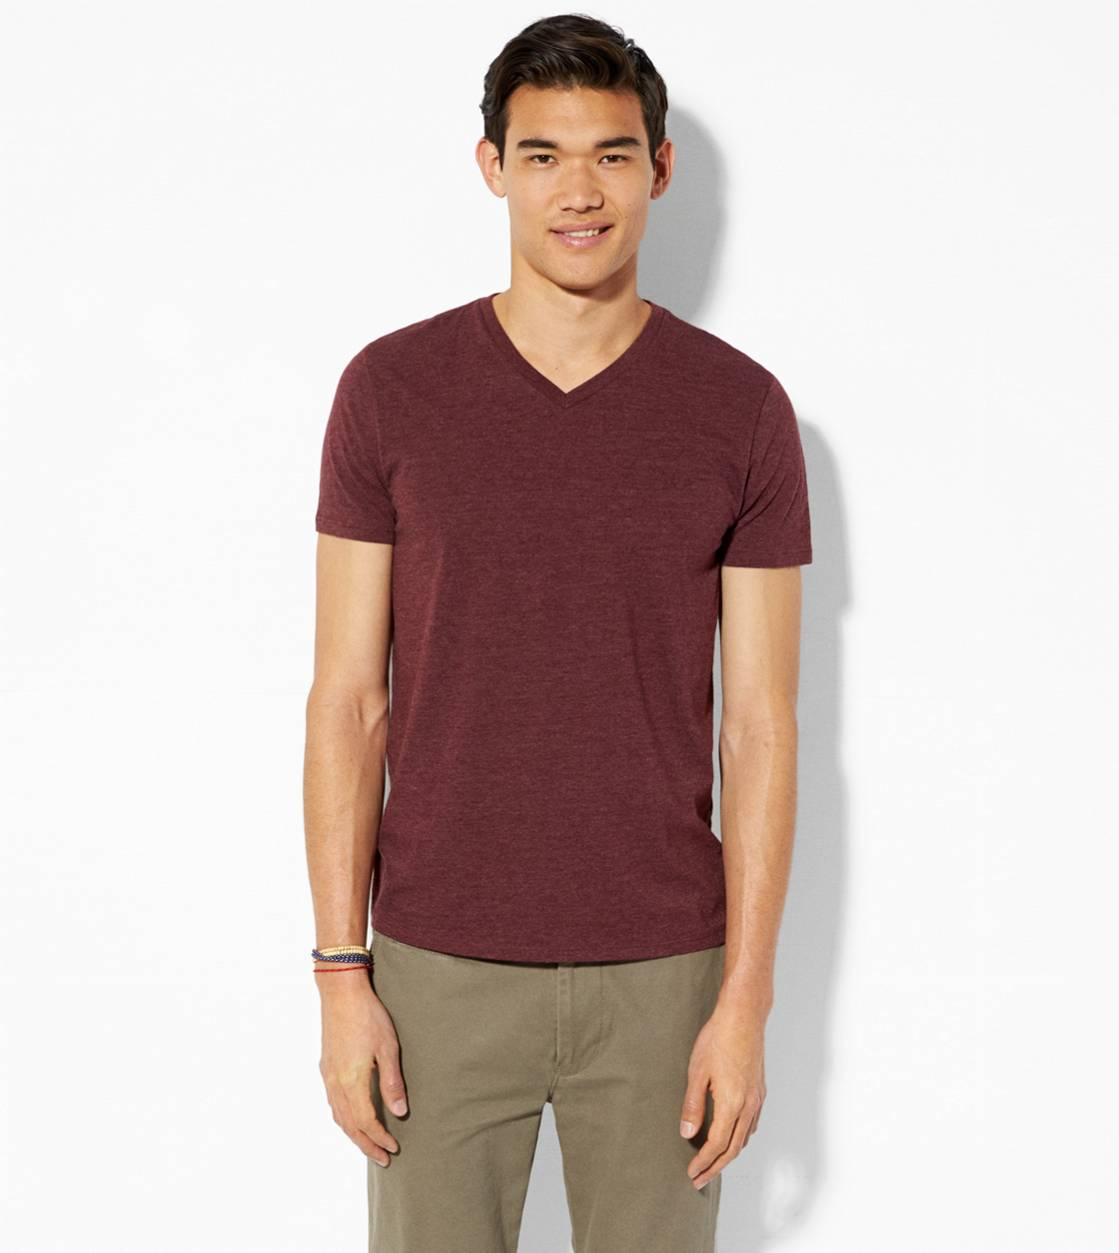 Merlot AE Legend V-Neck T-Shirt